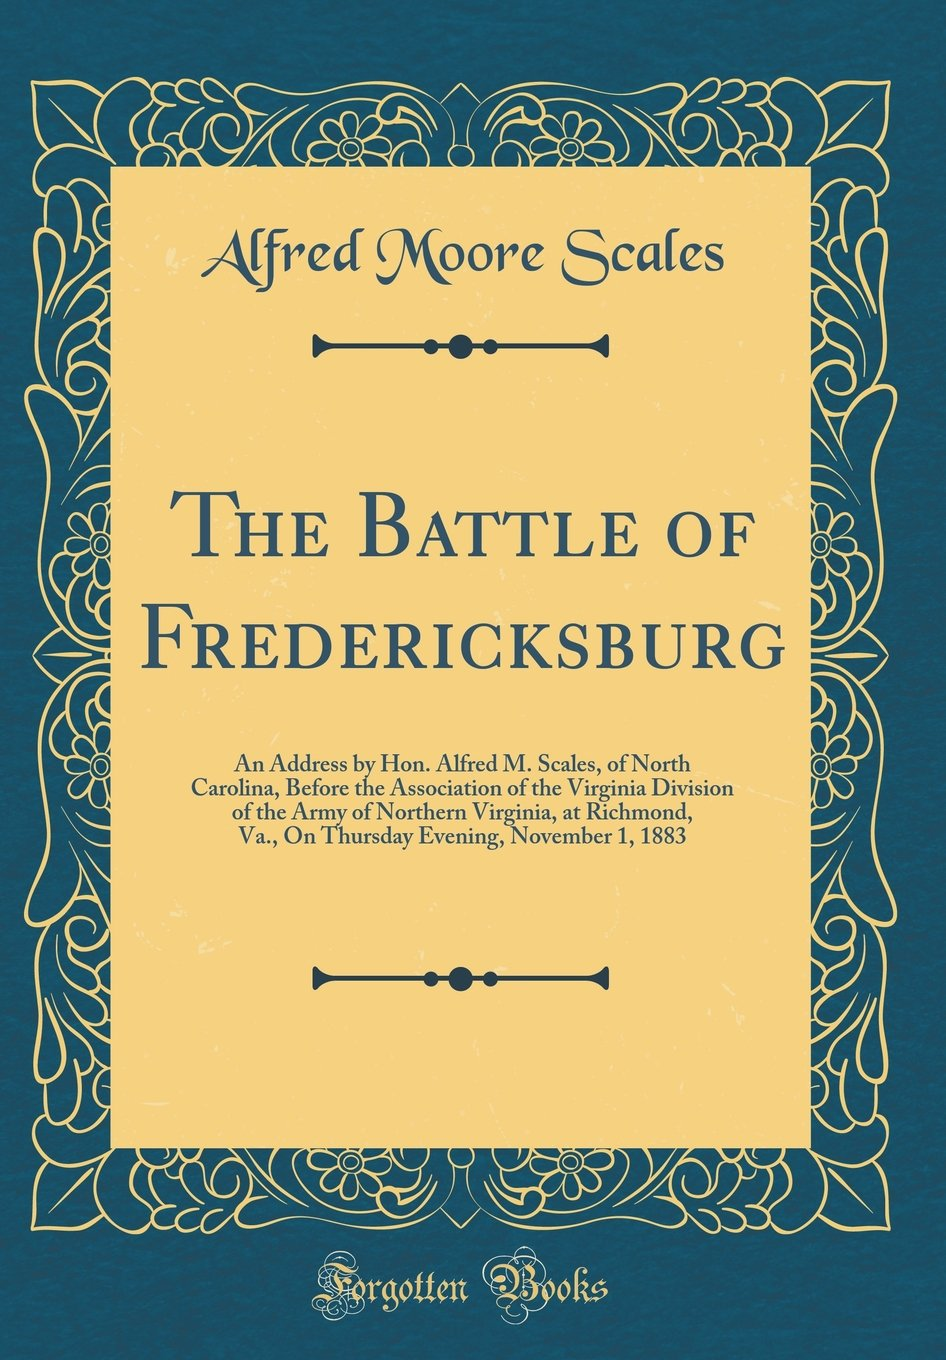 The Battle of Fredericksburg: An Address by Hon. Alfred M. Scales, of North Carolina, Before the Association of the Virginia Division of the Army of ... Evening, November 1, 1883 (Classic Reprint)